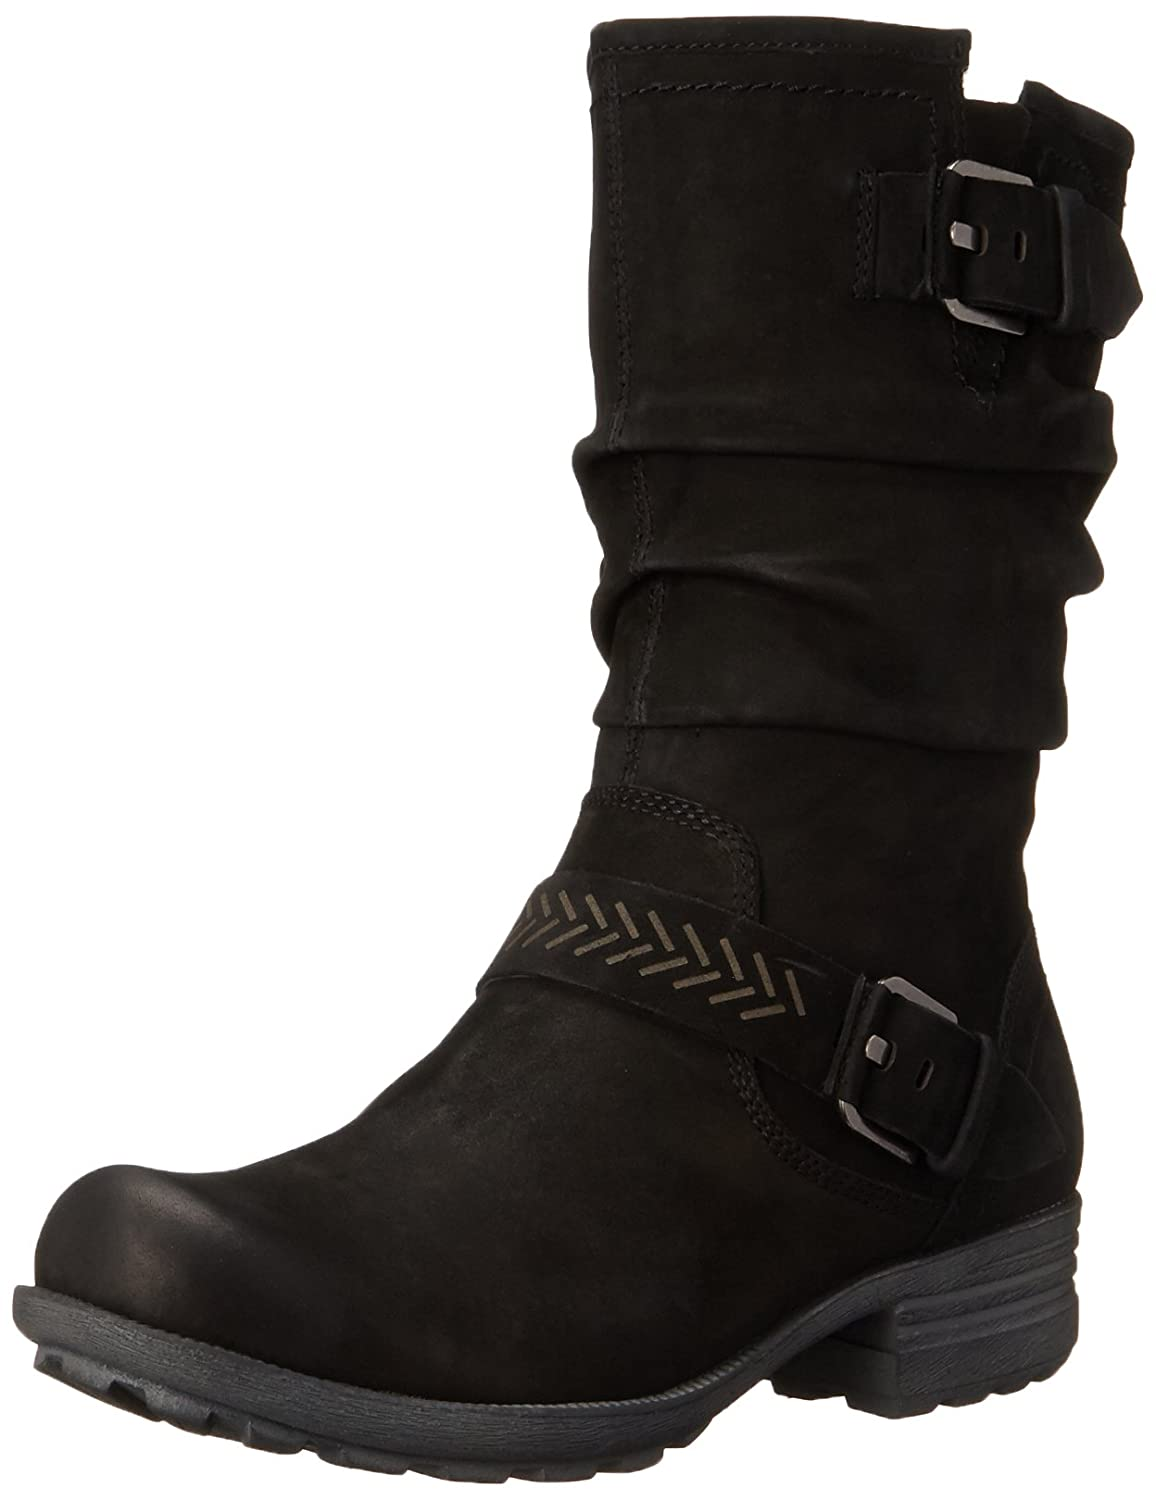 Cobb Hill Rockport Women's Brooke Boot B00SK4EA36 9.5 B(M) US|Black